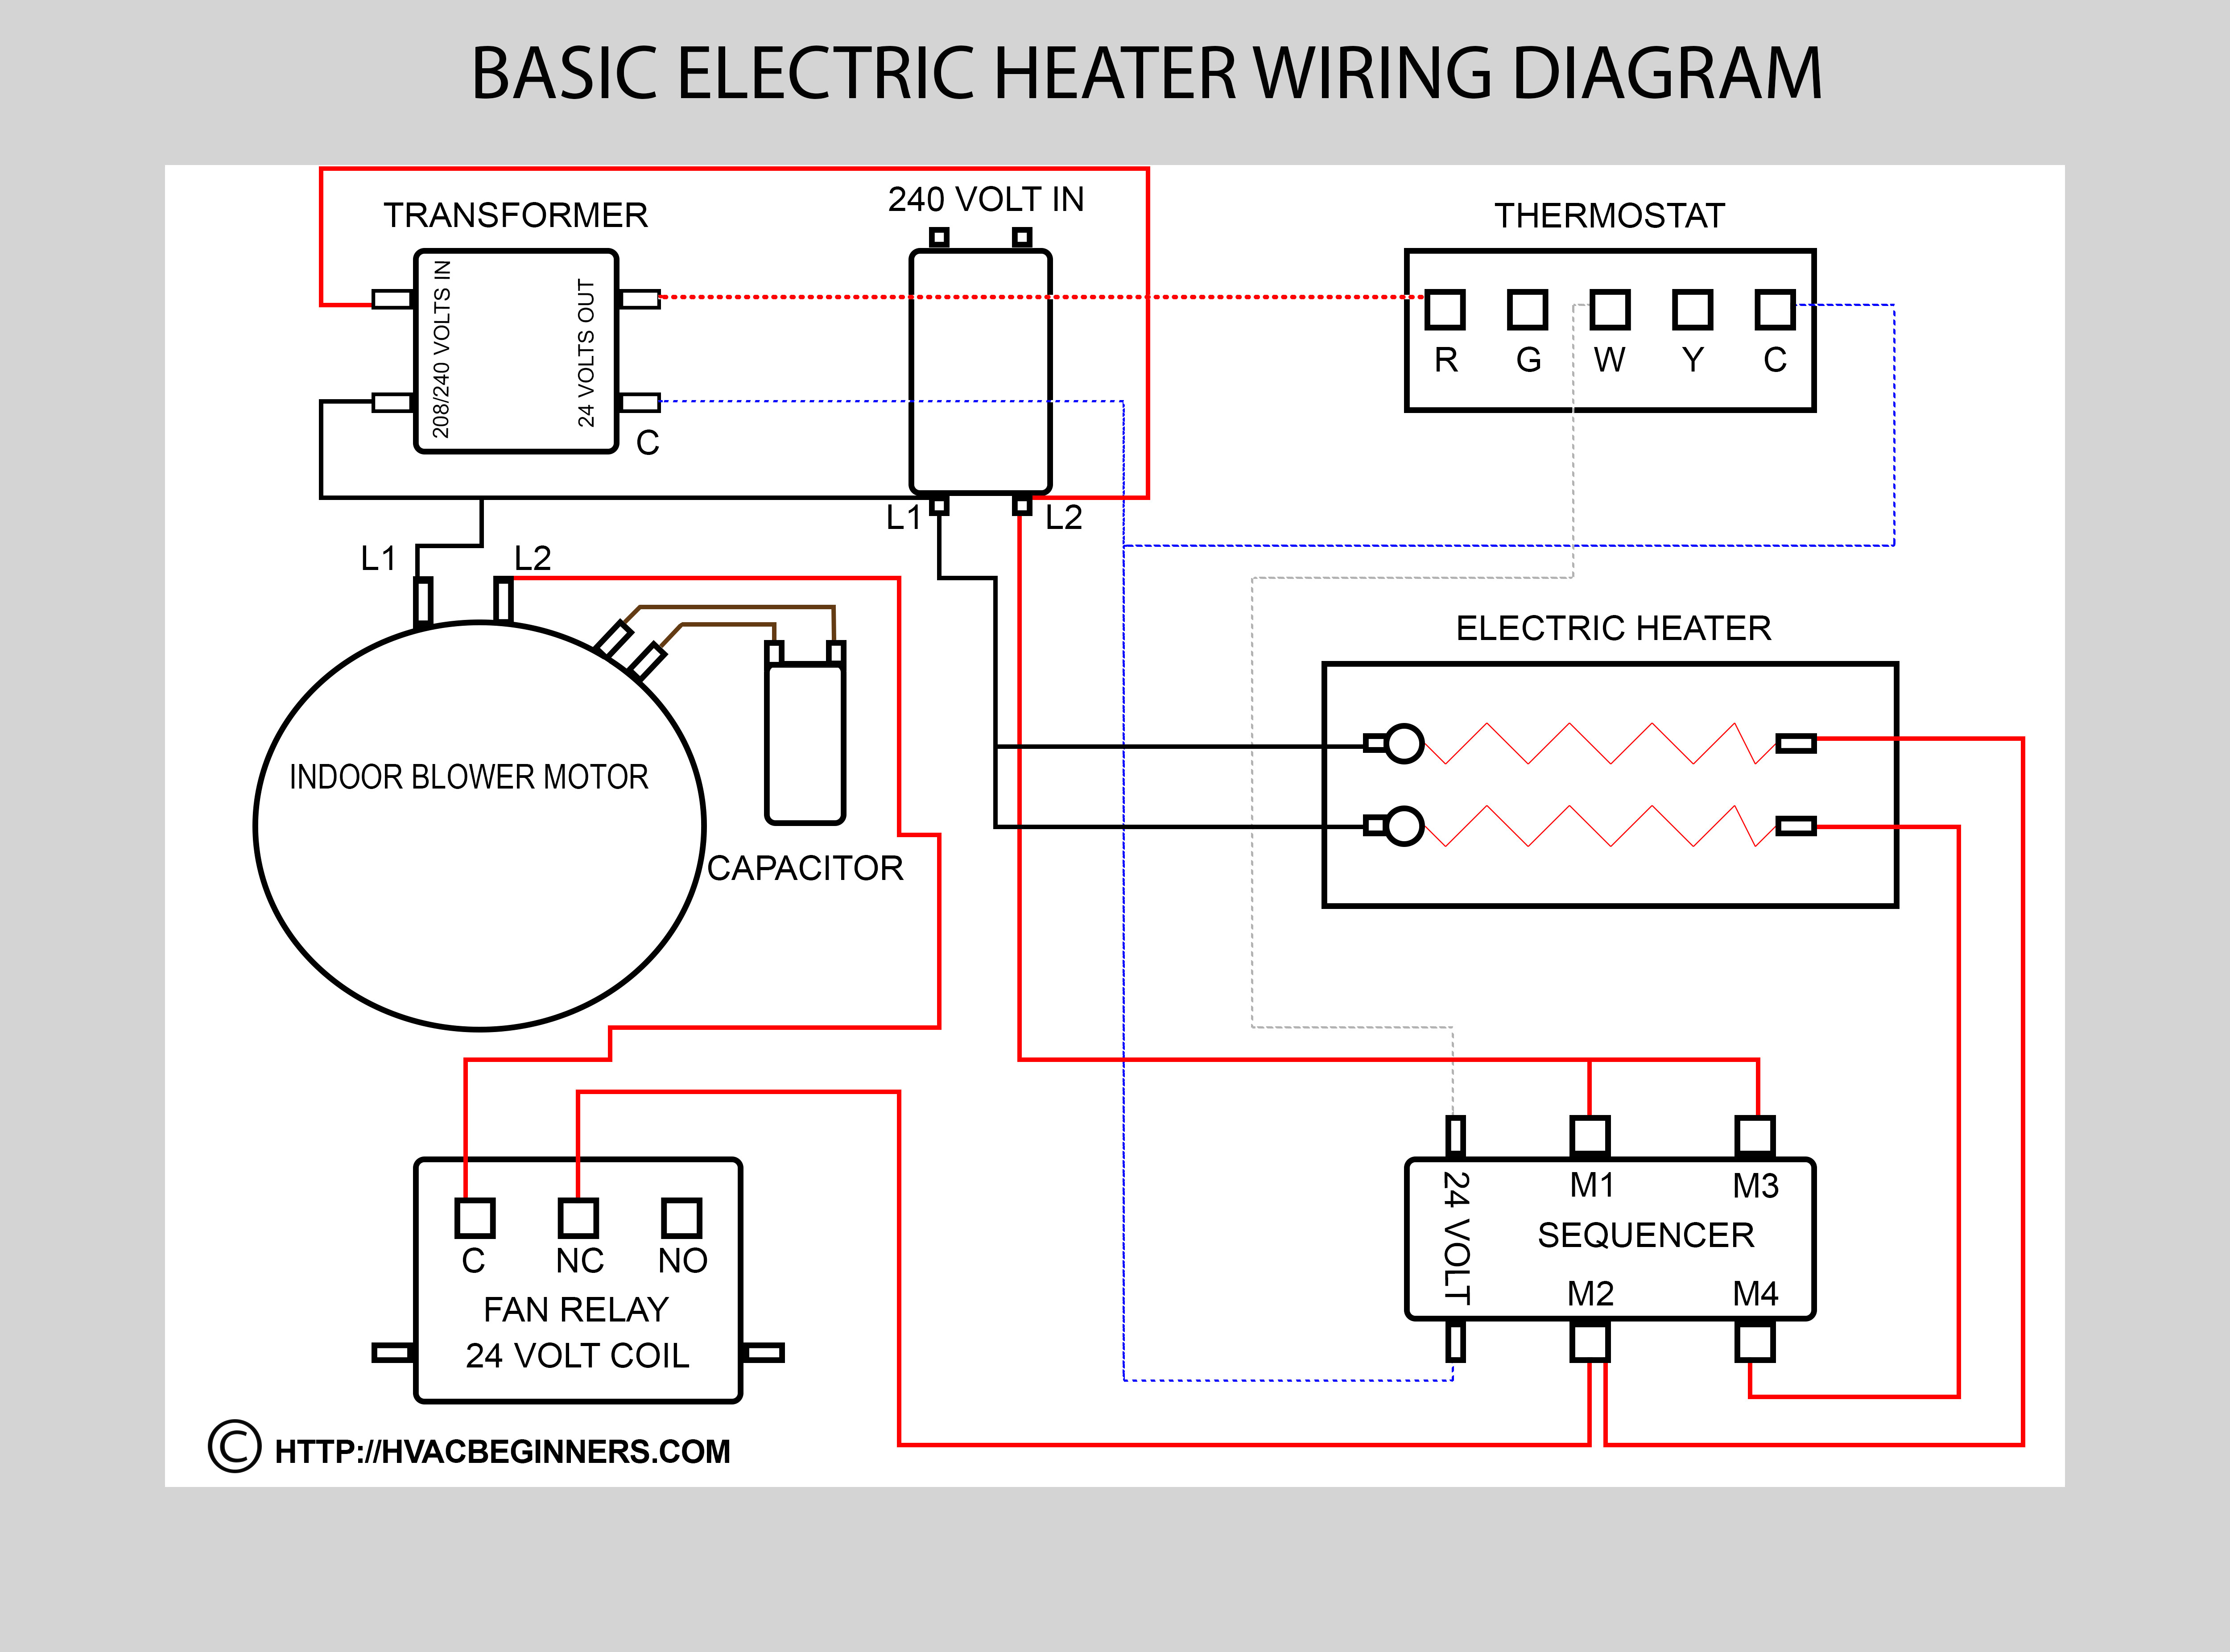 furnace fan motor wiring diagram Download-payne ac blower wiring diagram within furnace healthyman me rh healthyman me 3 Speed Blower Motor Wiring 1996 Dodge 2500 Wiring Diagram 6-t